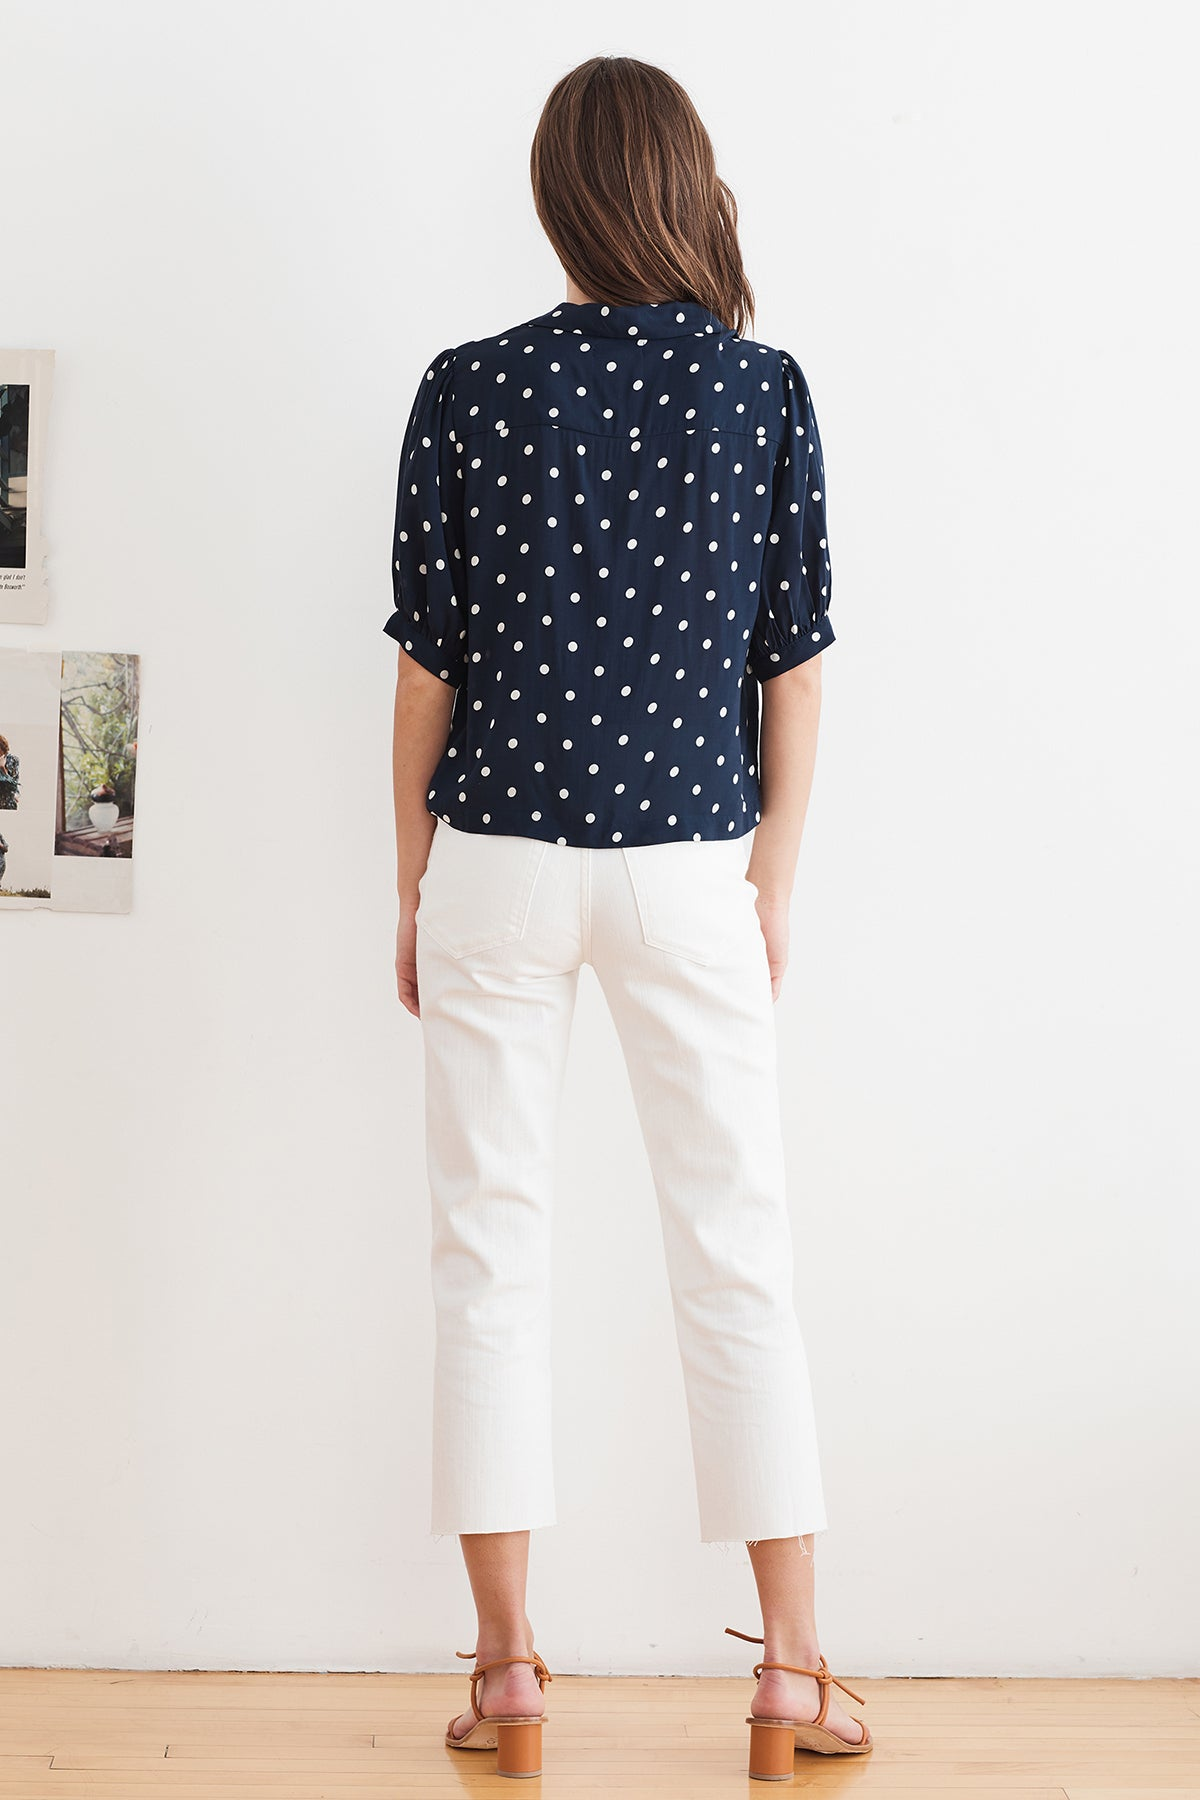 KADEN POLKA DOT BUTTON UP BLOUSE